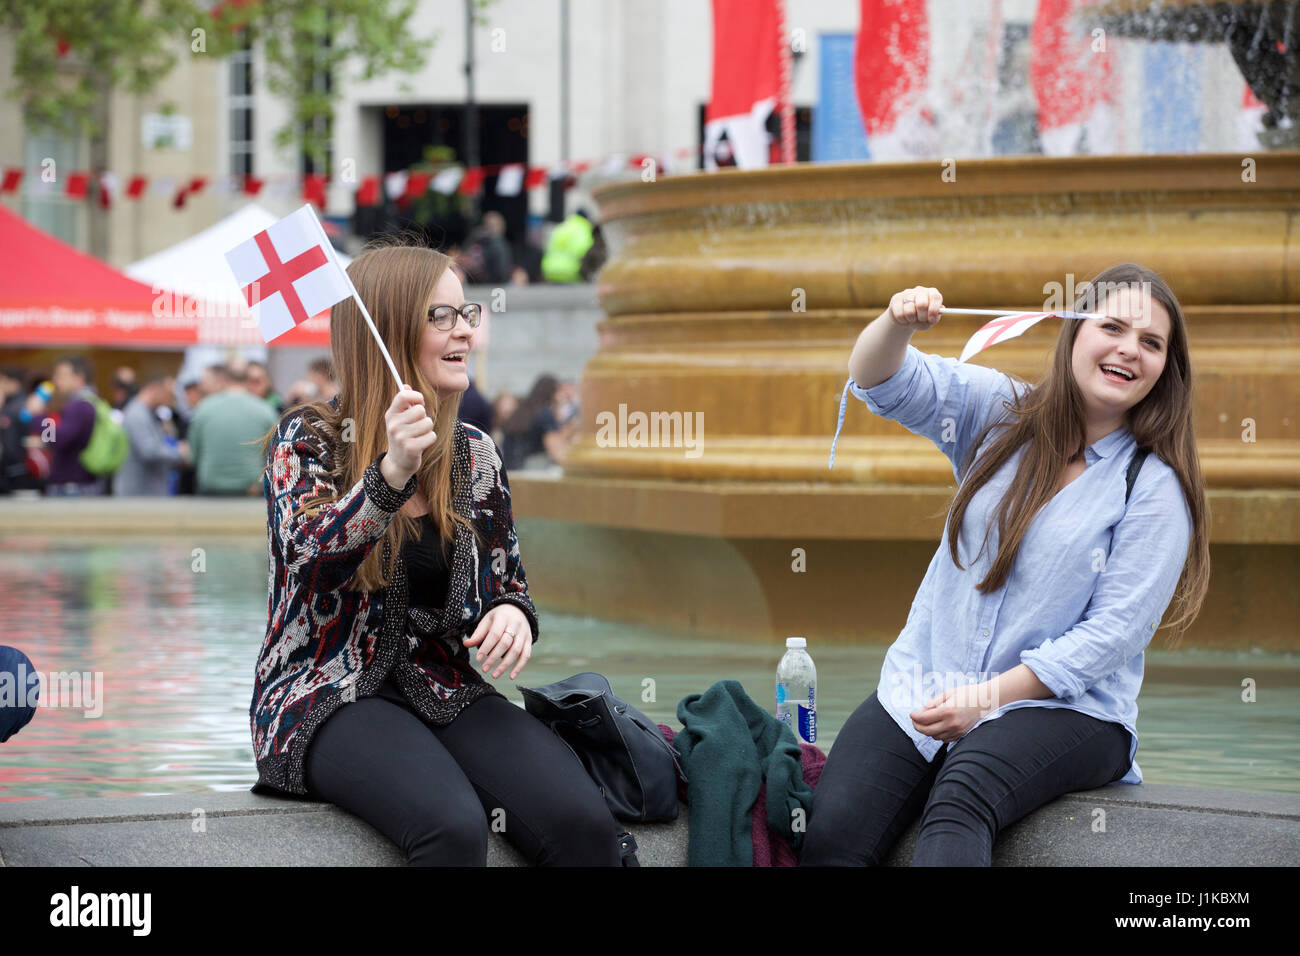 Trafalgar Square,UK,22nd April 2017,People flag waving at The Annual Feast of St George celebrations which took - Stock Image